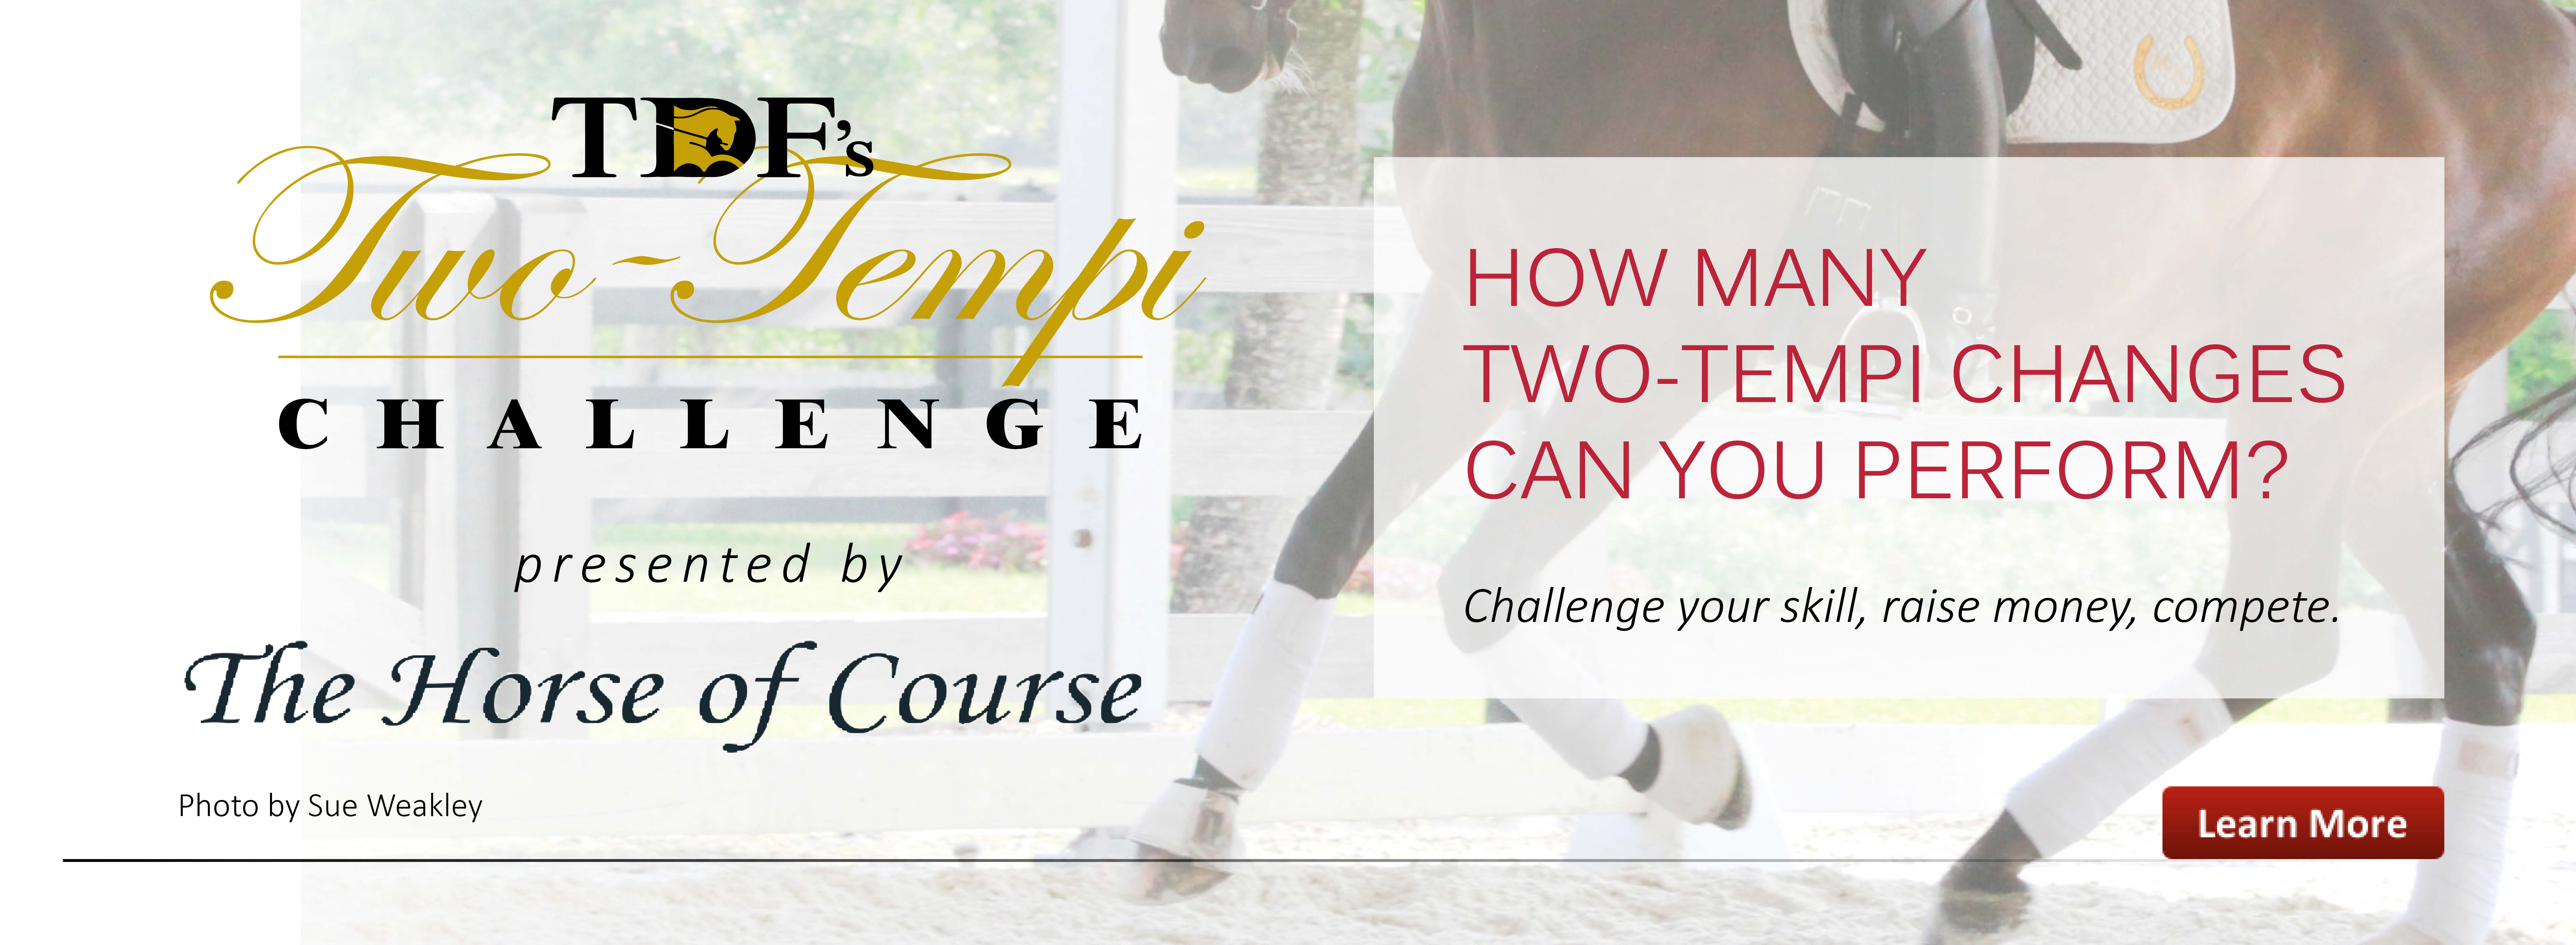 Two-Tempi Challenge